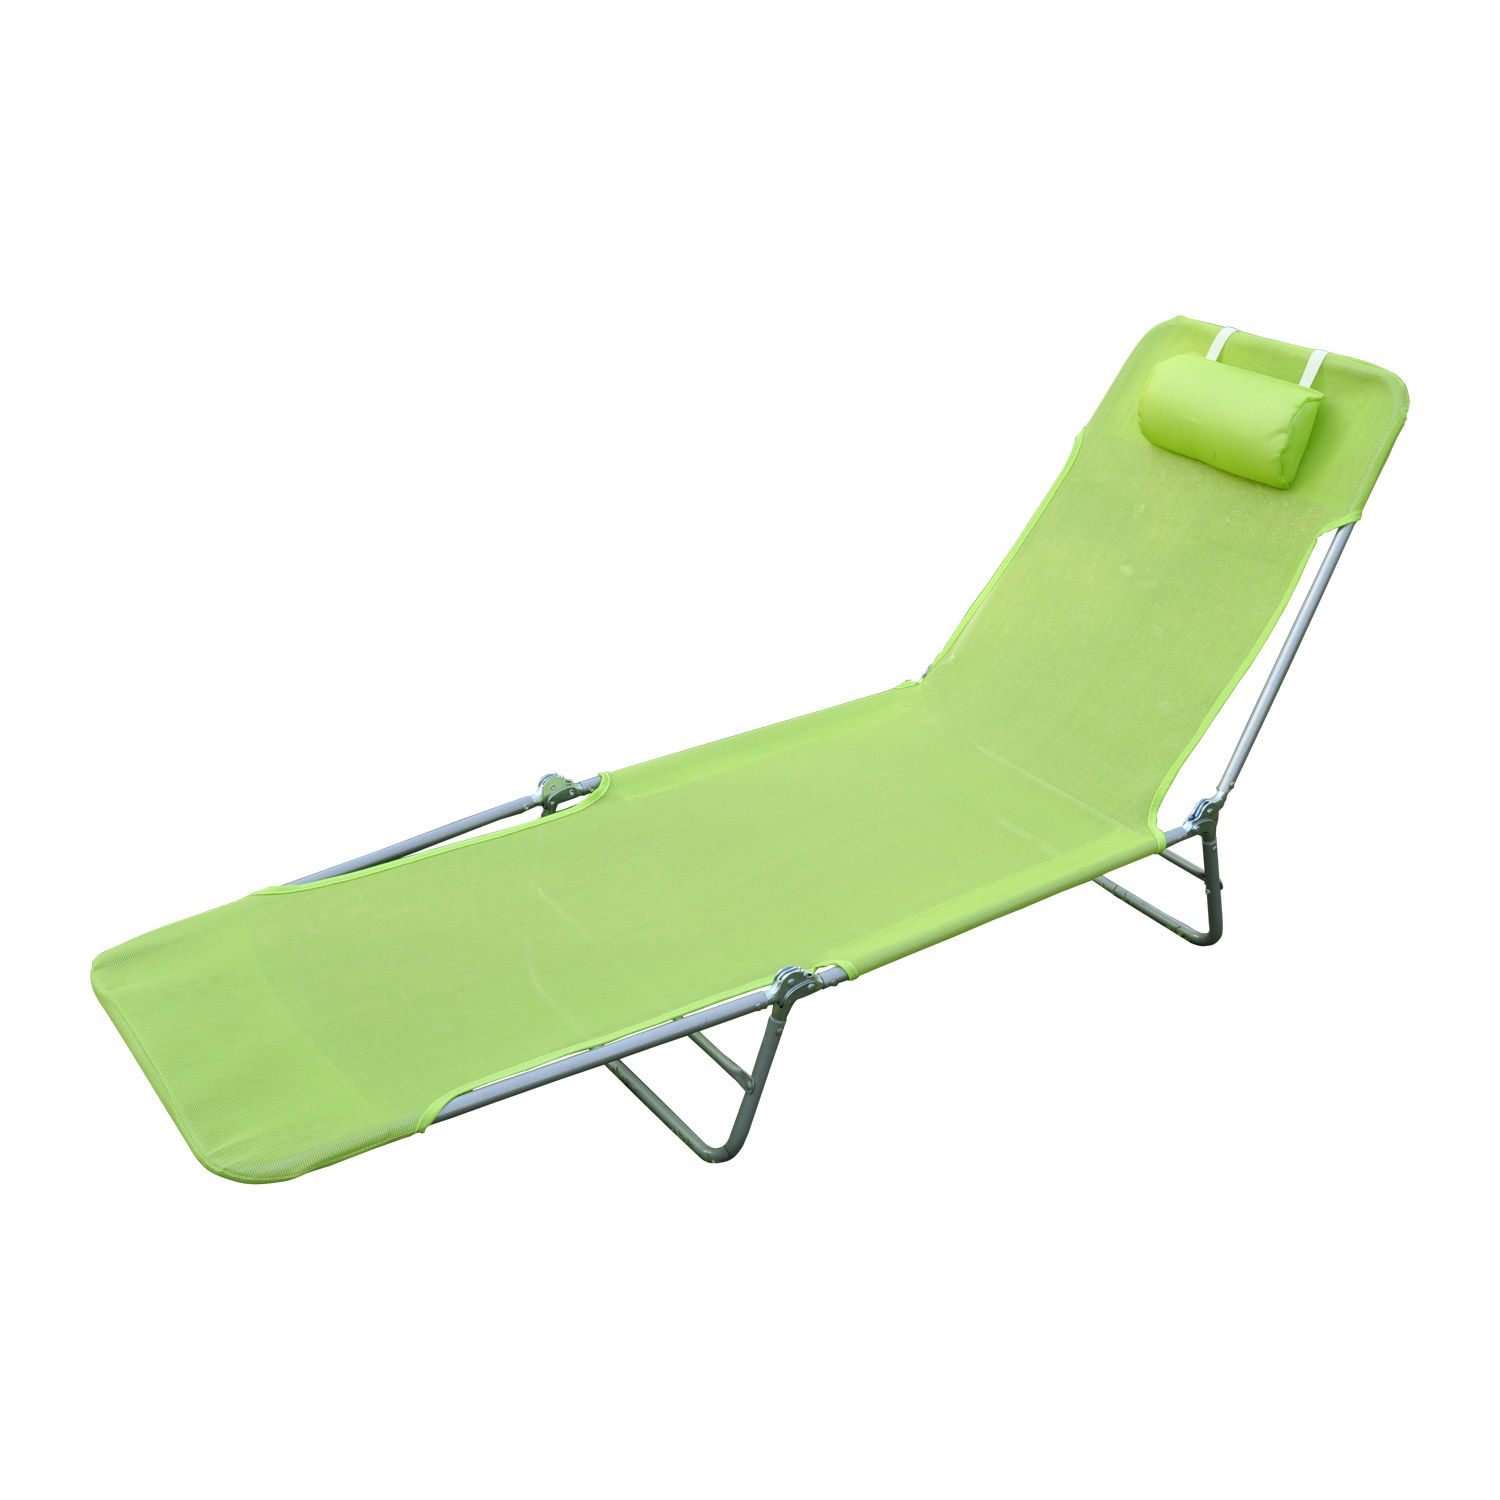 Outsunny Folding Beach Chaise Lounge / Pool Reclining Chair - Green  sc 1 st  Walmart : folding beach chaise - Sectionals, Sofas & Couches